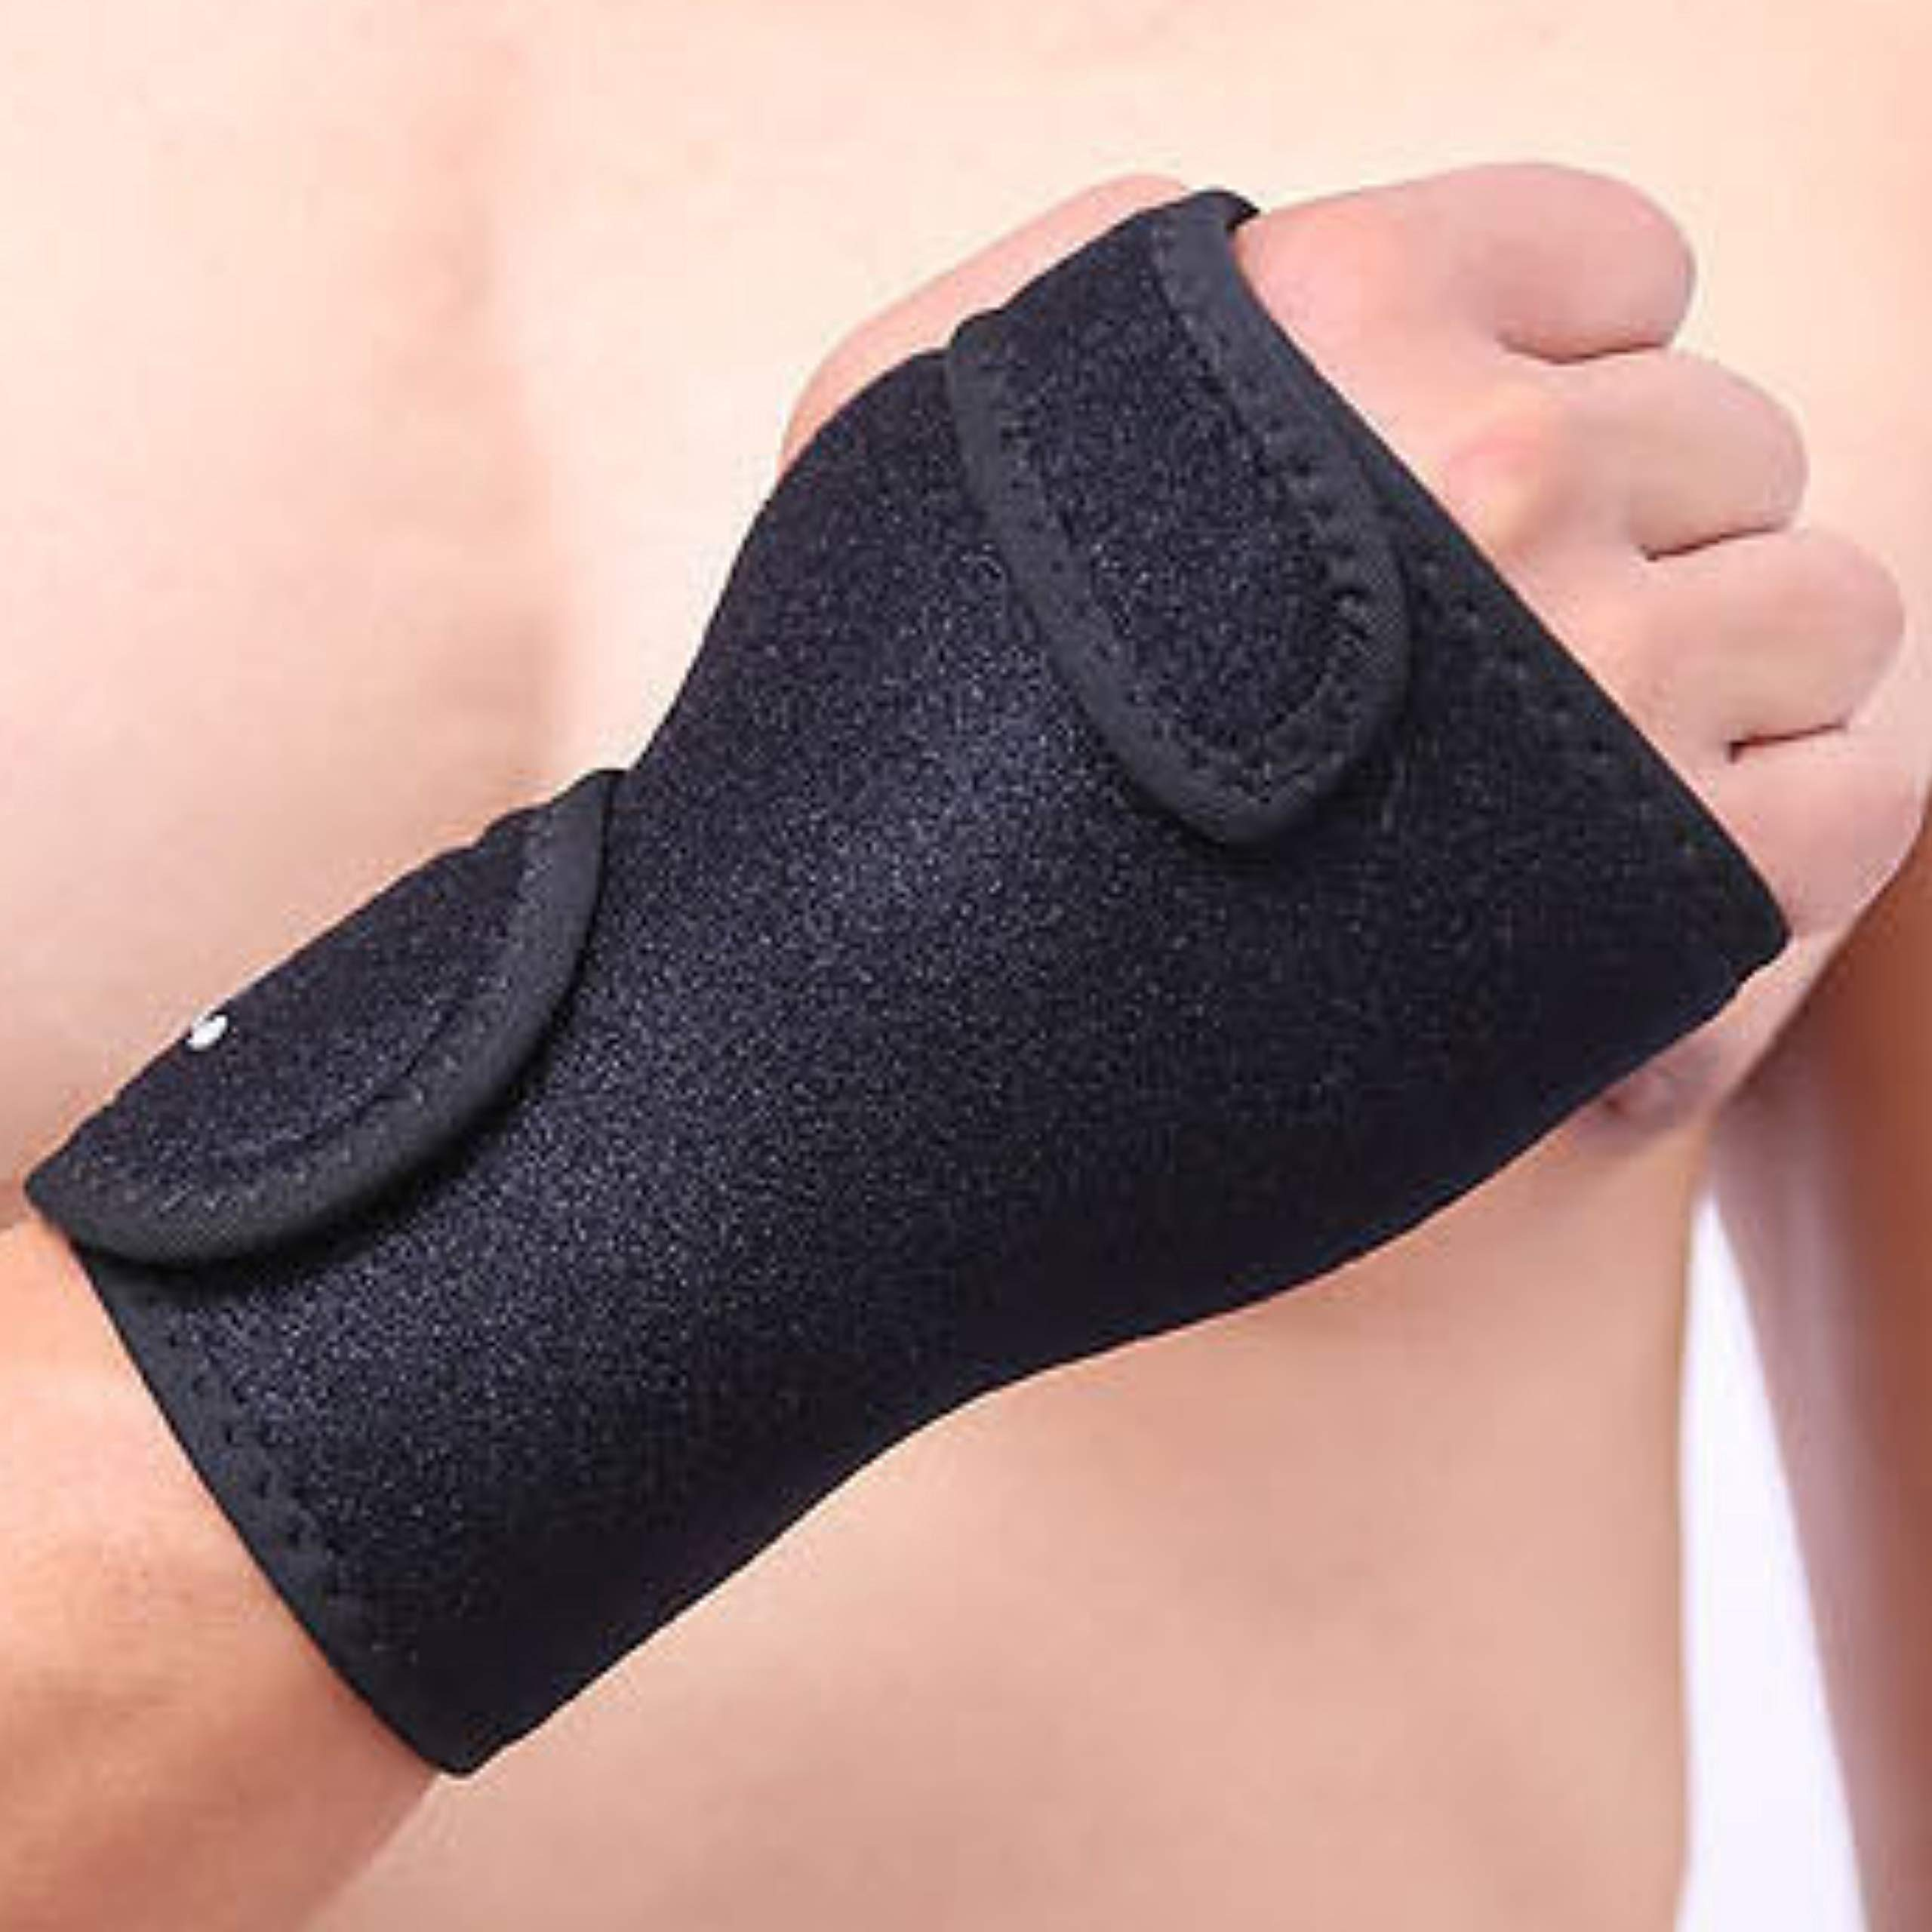 #1 Carpal Tunnel Wrist Brace Support by MONALE – Night & Day Use– Tendonitis – Arthritis – with Removable Splint & Adjustable Support Wrap – Right & Left Hand Available - Black